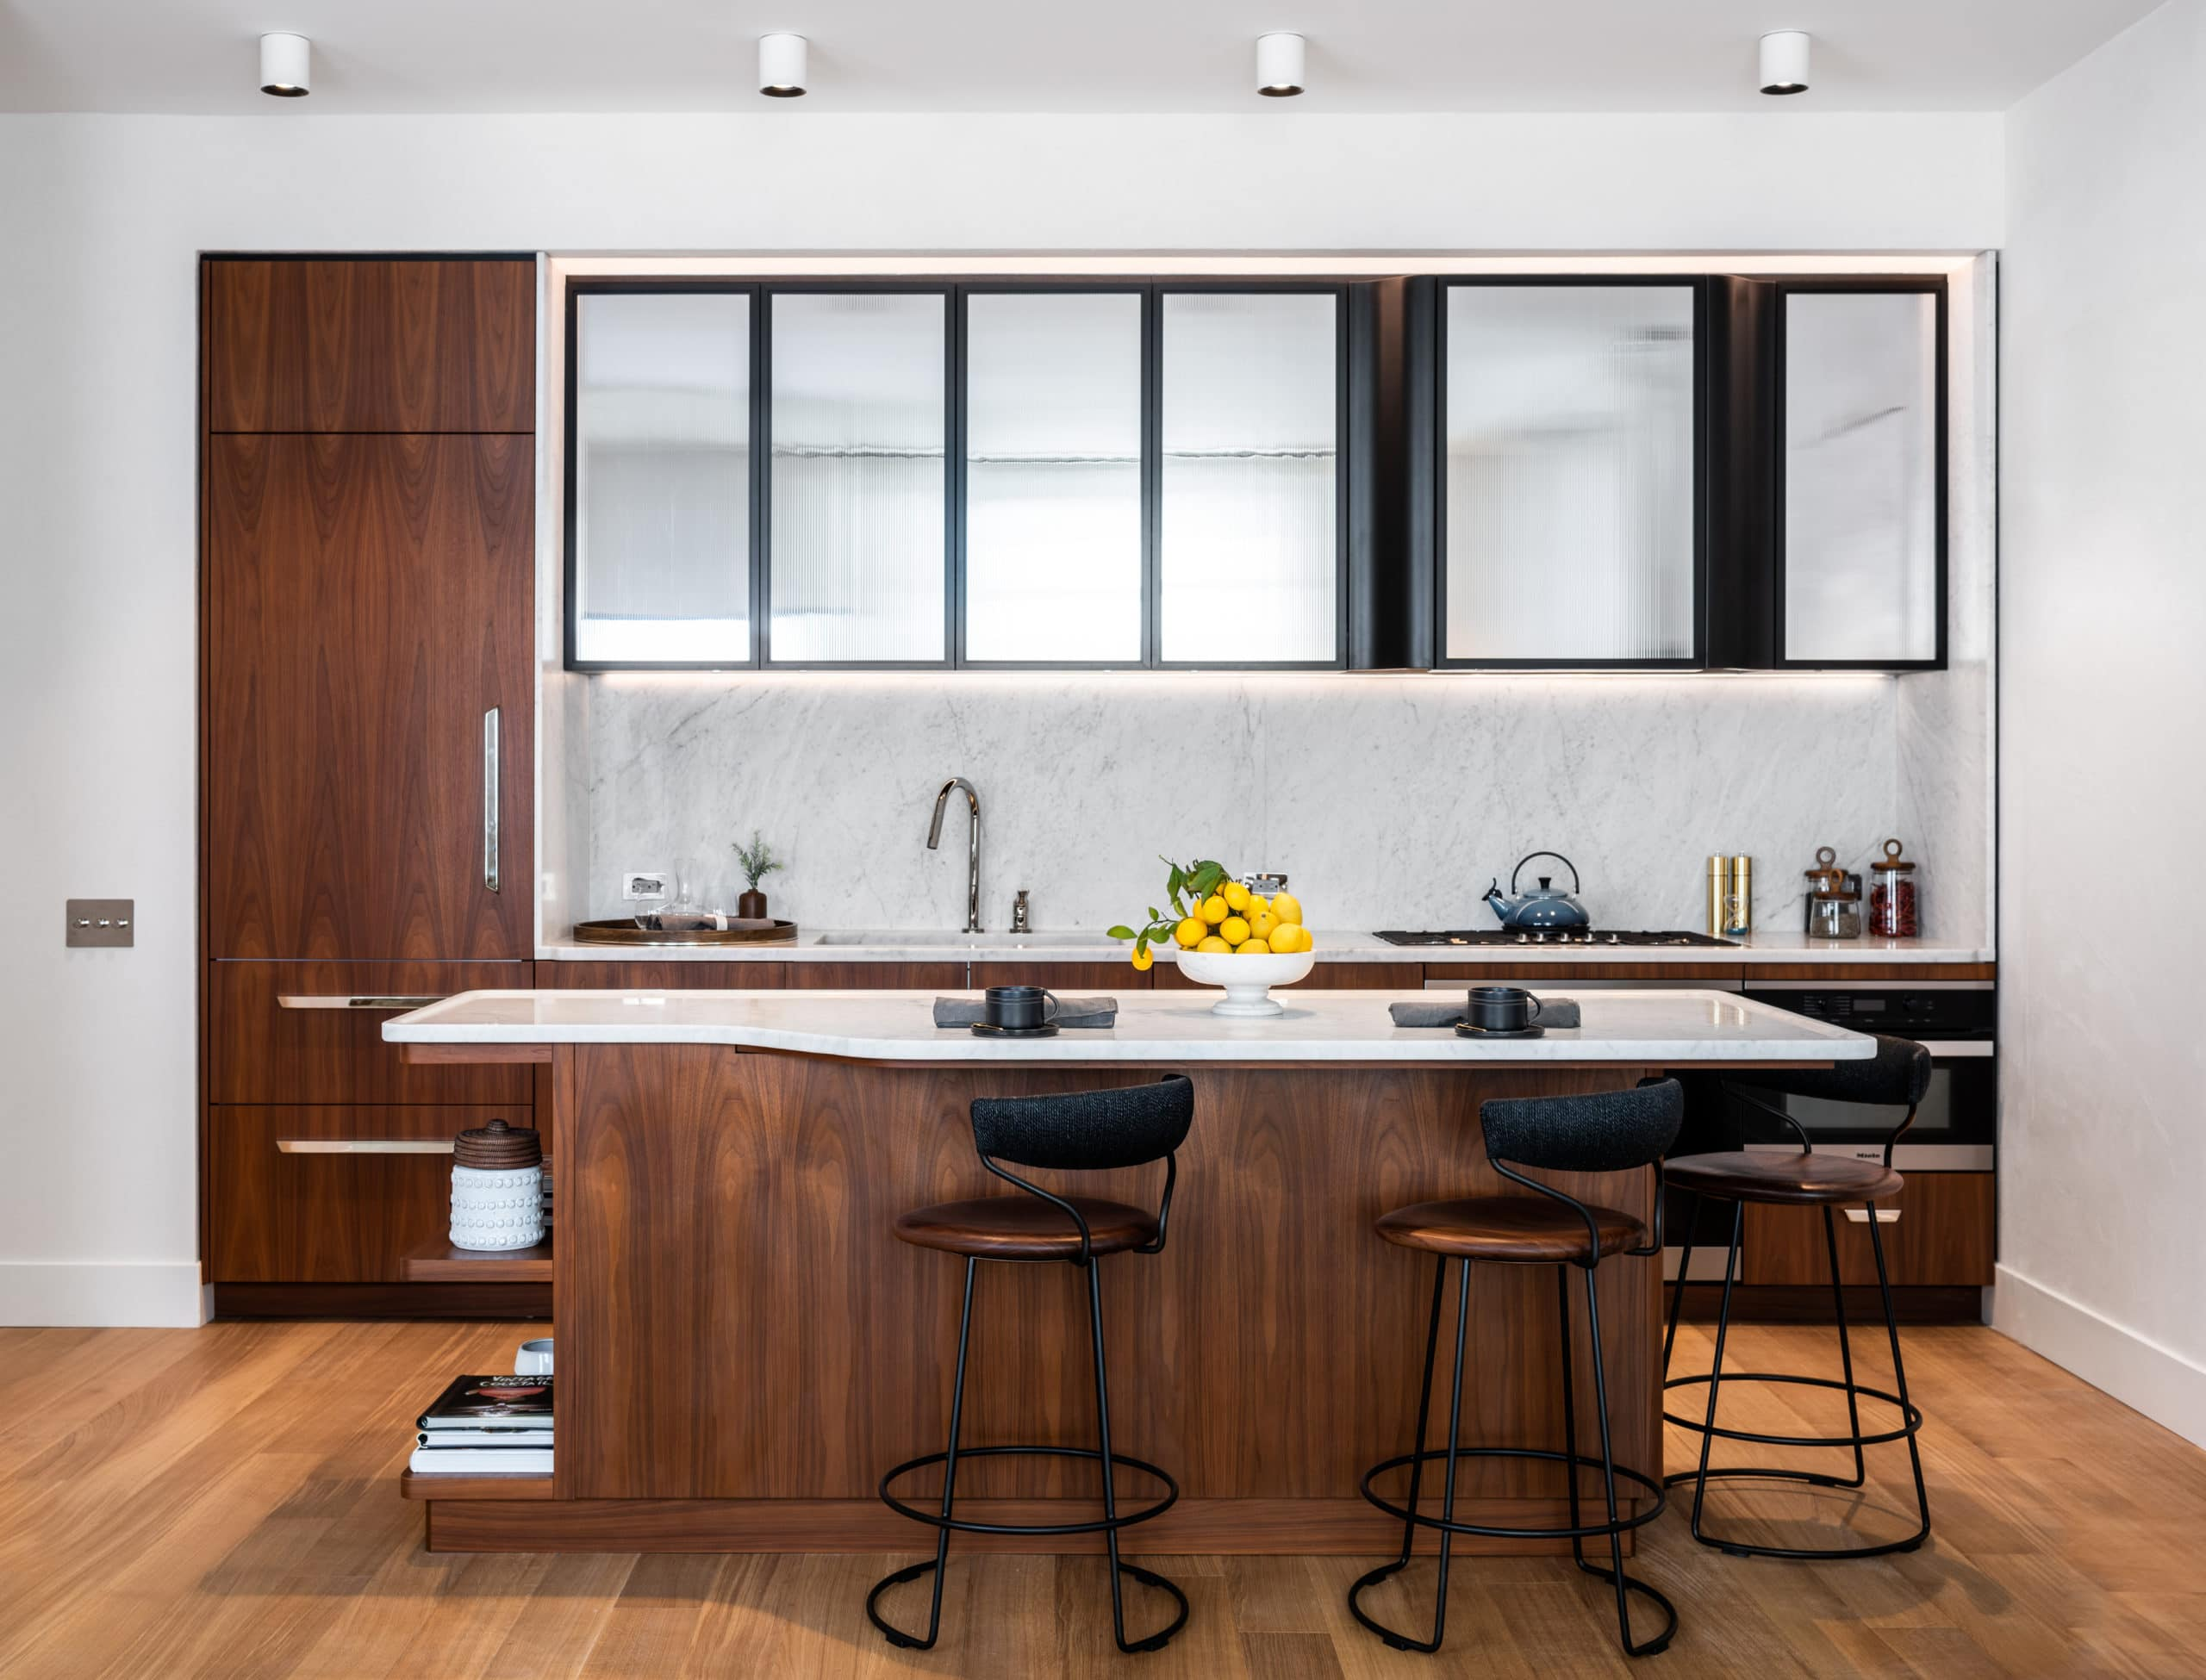 Kitchen in Greenwich West luxury condos in New York. Center island, stone countertops, white backsplash and glass cabinets.